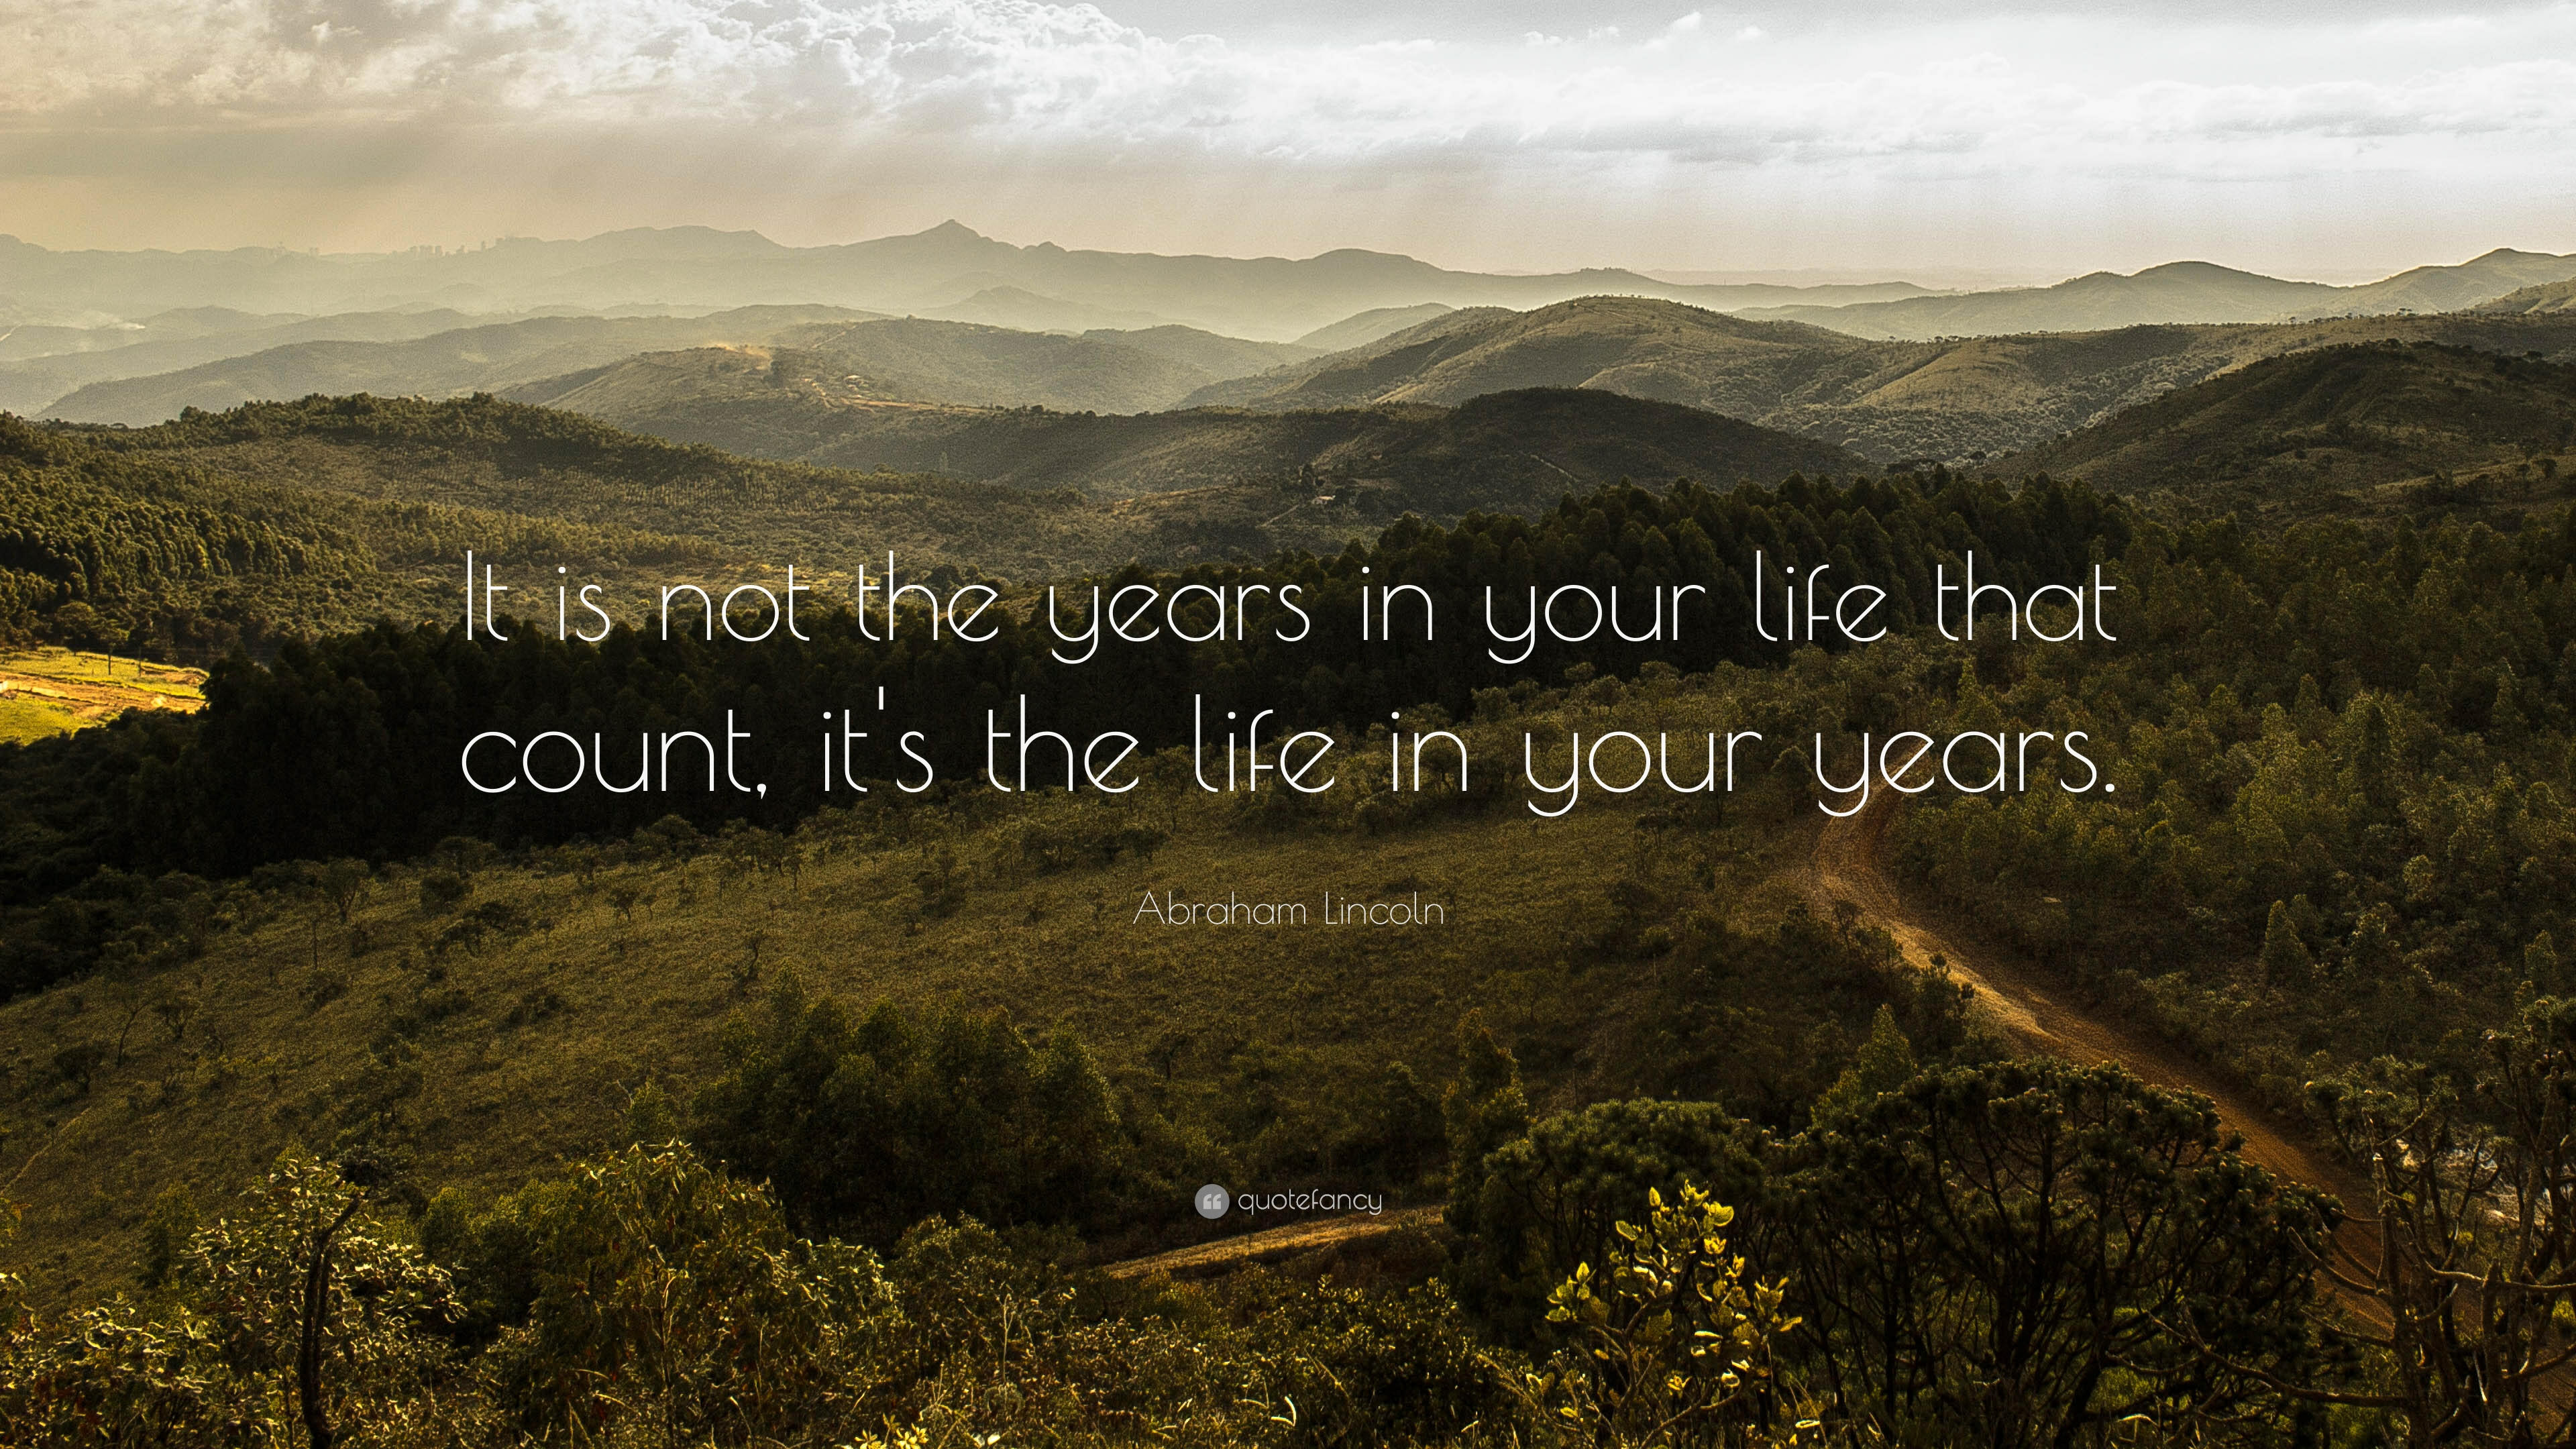 Abraham Lincoln Quote: U201cIt Is Not The Years In Your Life That Count,